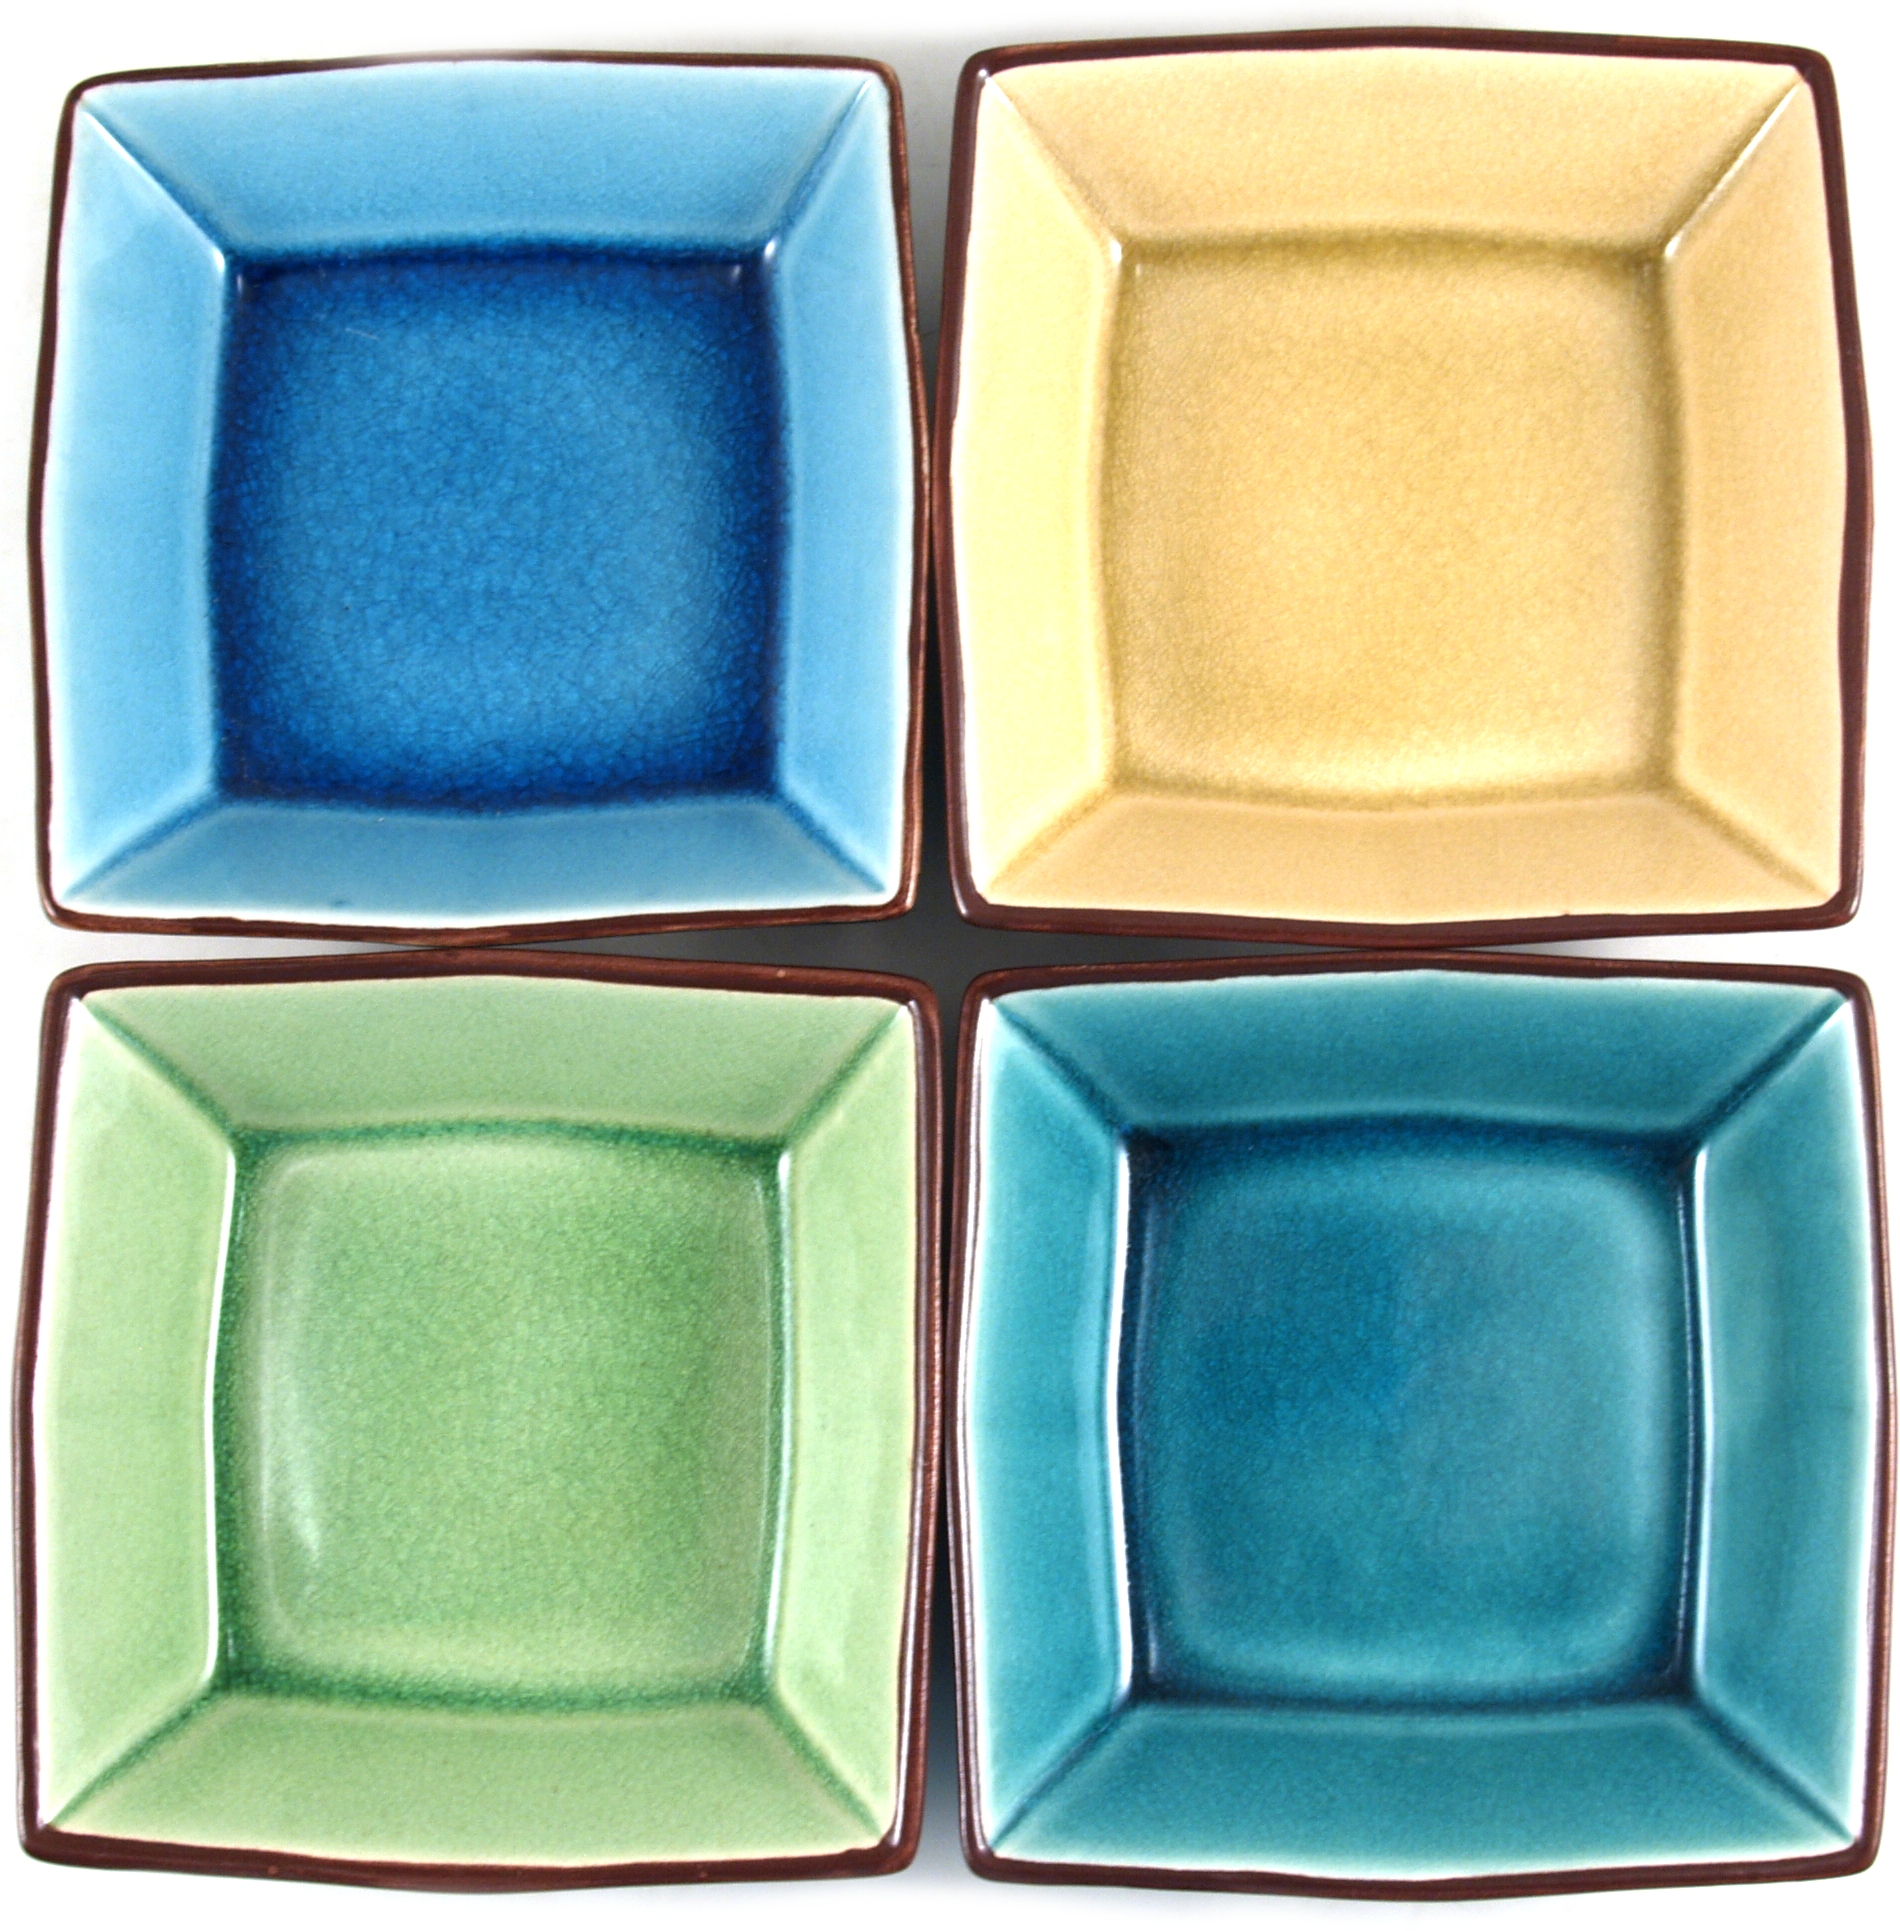 Asian Porcelain 4 Piece Sauce Bowl Set